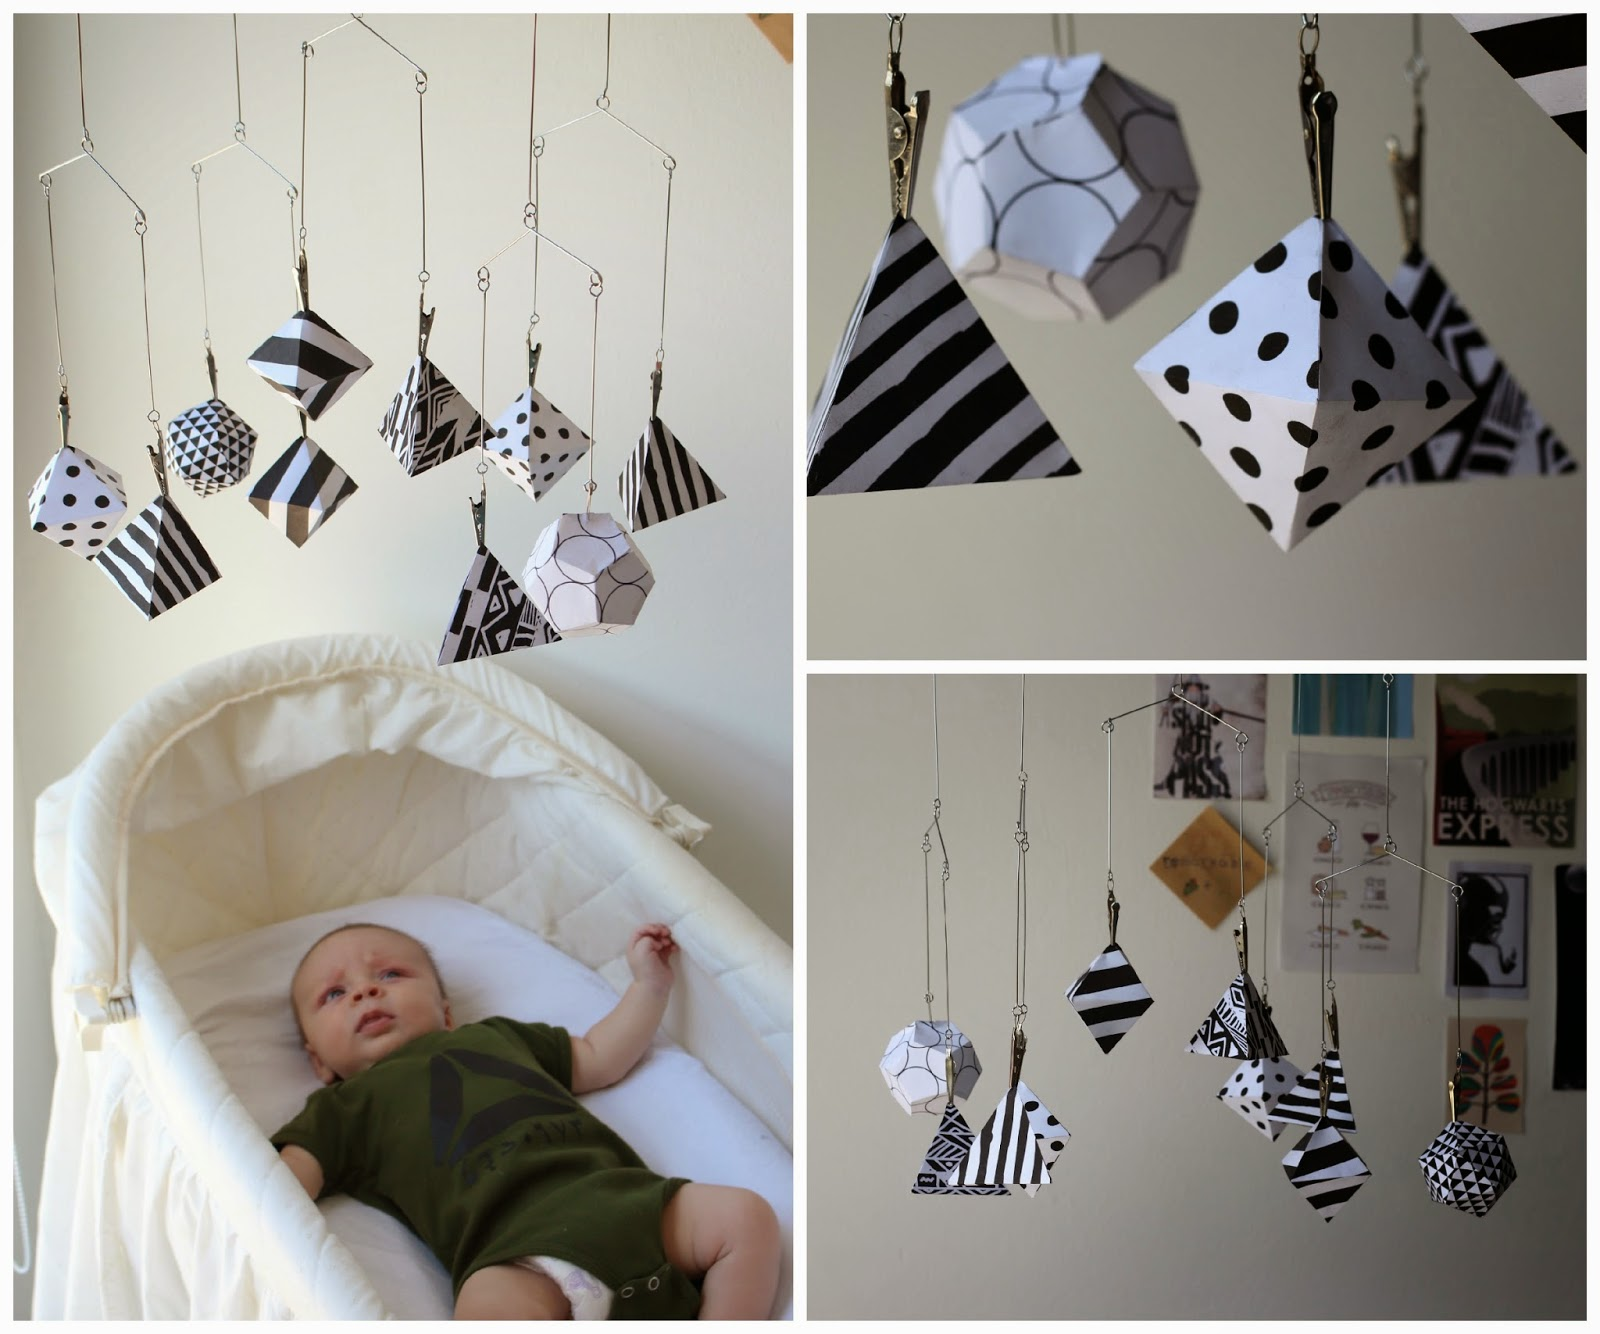 to the fullest diy geometric mobile -  big brother) and voila i had an easy affordable modernaesthetically pleasing developmentally appropriate and visuallystimulating baby mobile